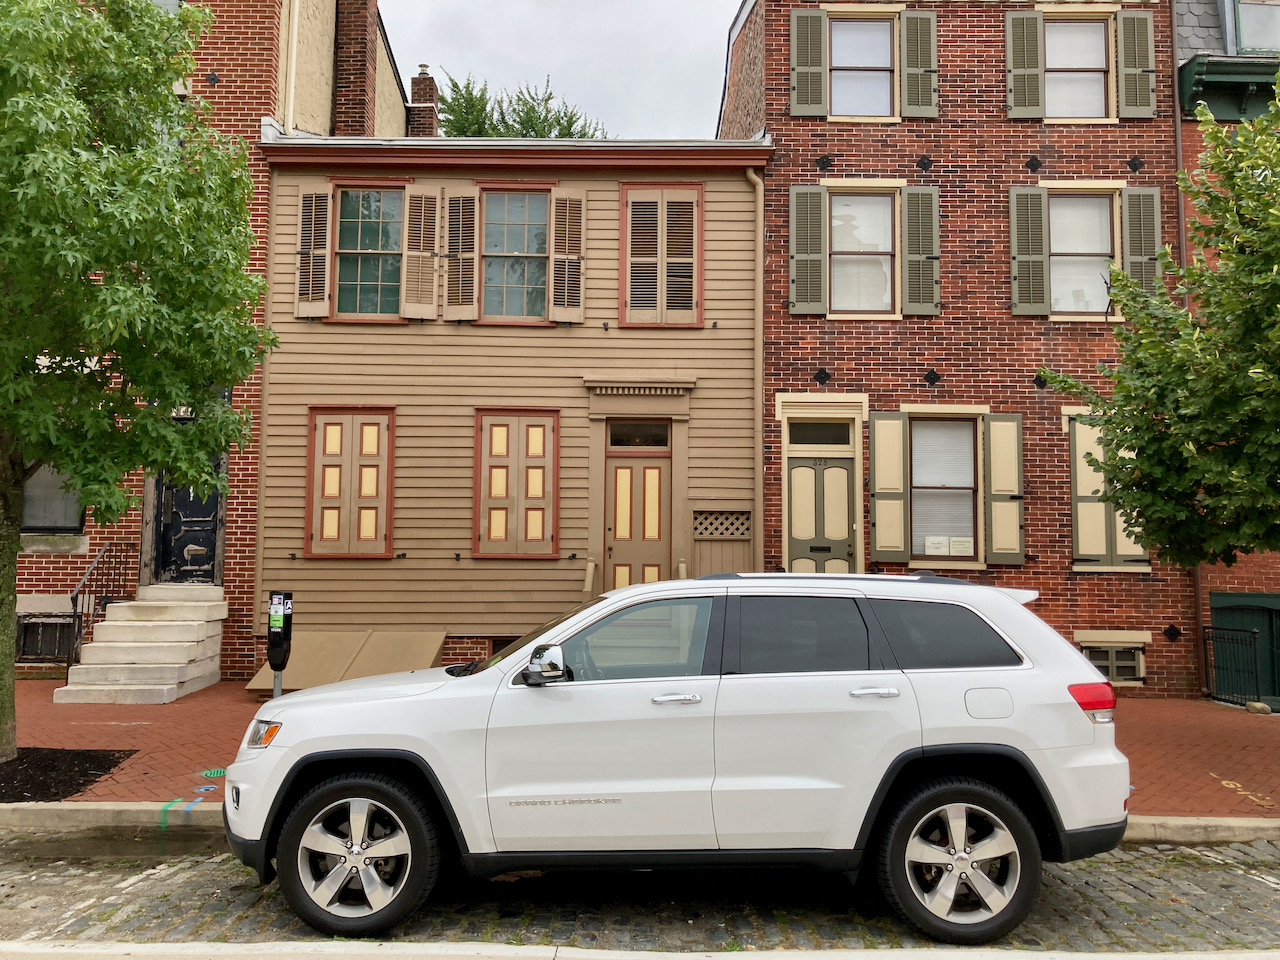 2014 Jeep Grand Cherokee parked in front of the Walt Whitman House.